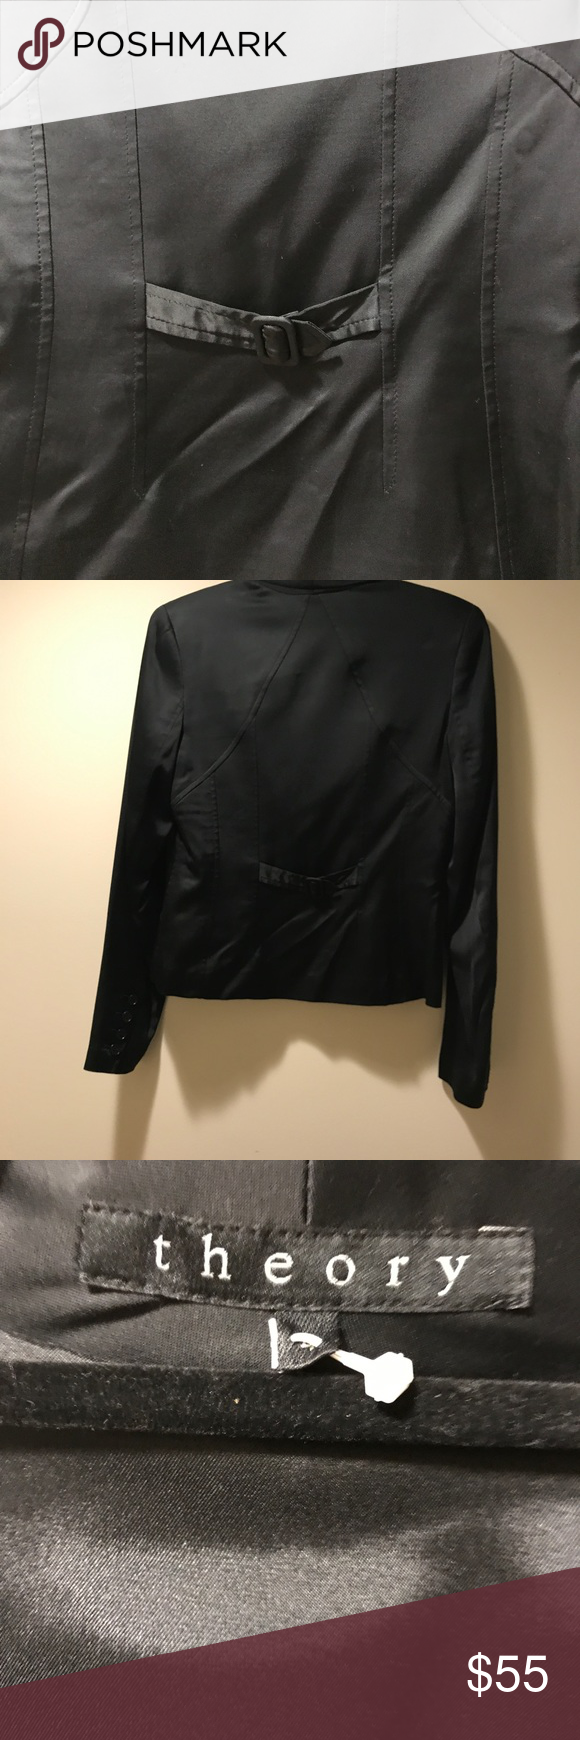 Theory 100% silk black jacket. Theory 100% silk black jacket.  Size - Small. Perfect for formal or informal gathering. One single button to the front. Jacket has unique bacon. Like new Condition. Theory Jackets & Coats Blazers